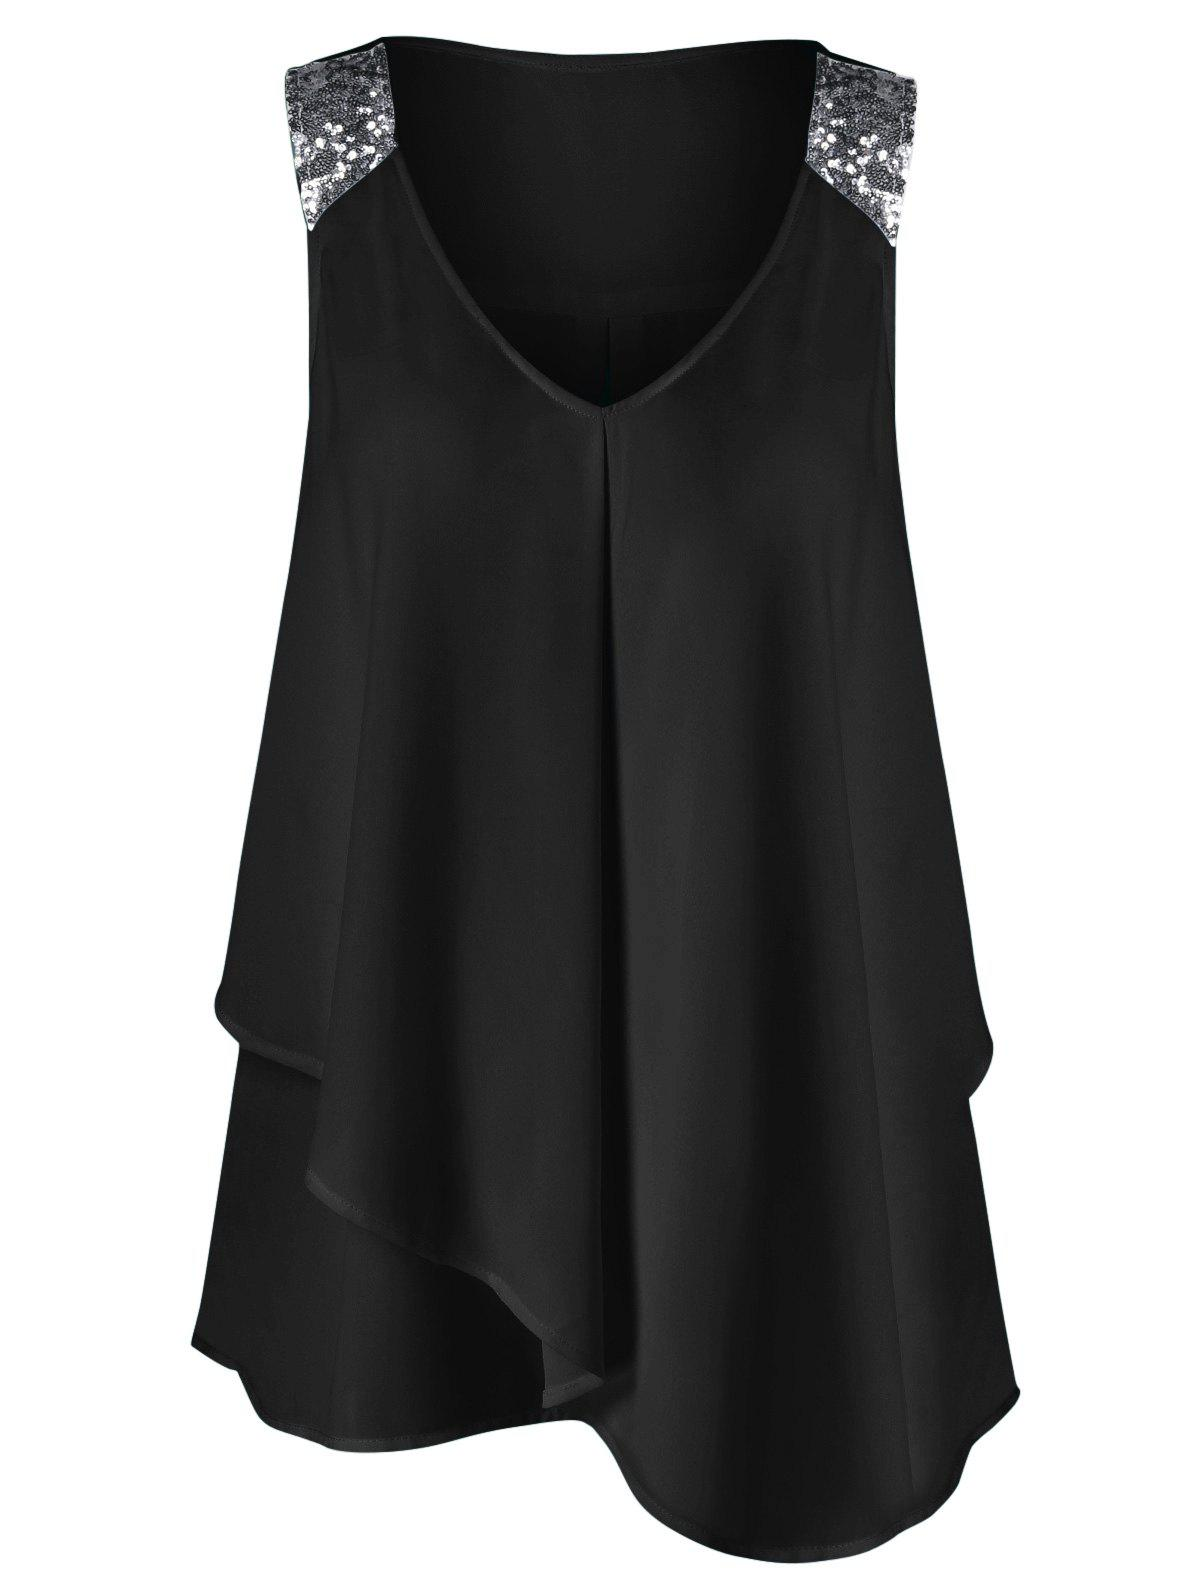 Plus Size Sequined Sleeveless Shoulder Overlap BlouseWOMEN<br><br>Size: 2XL; Color: BLACK; Material: Polyester; Shirt Length: Long; Sleeve Length: Sleeveless; Collar: V-Neck; Style: Fashion; Season: Summer; Pattern Type: Others; Weight: 0.2200kg; Package Contents: 1 x Blouse;